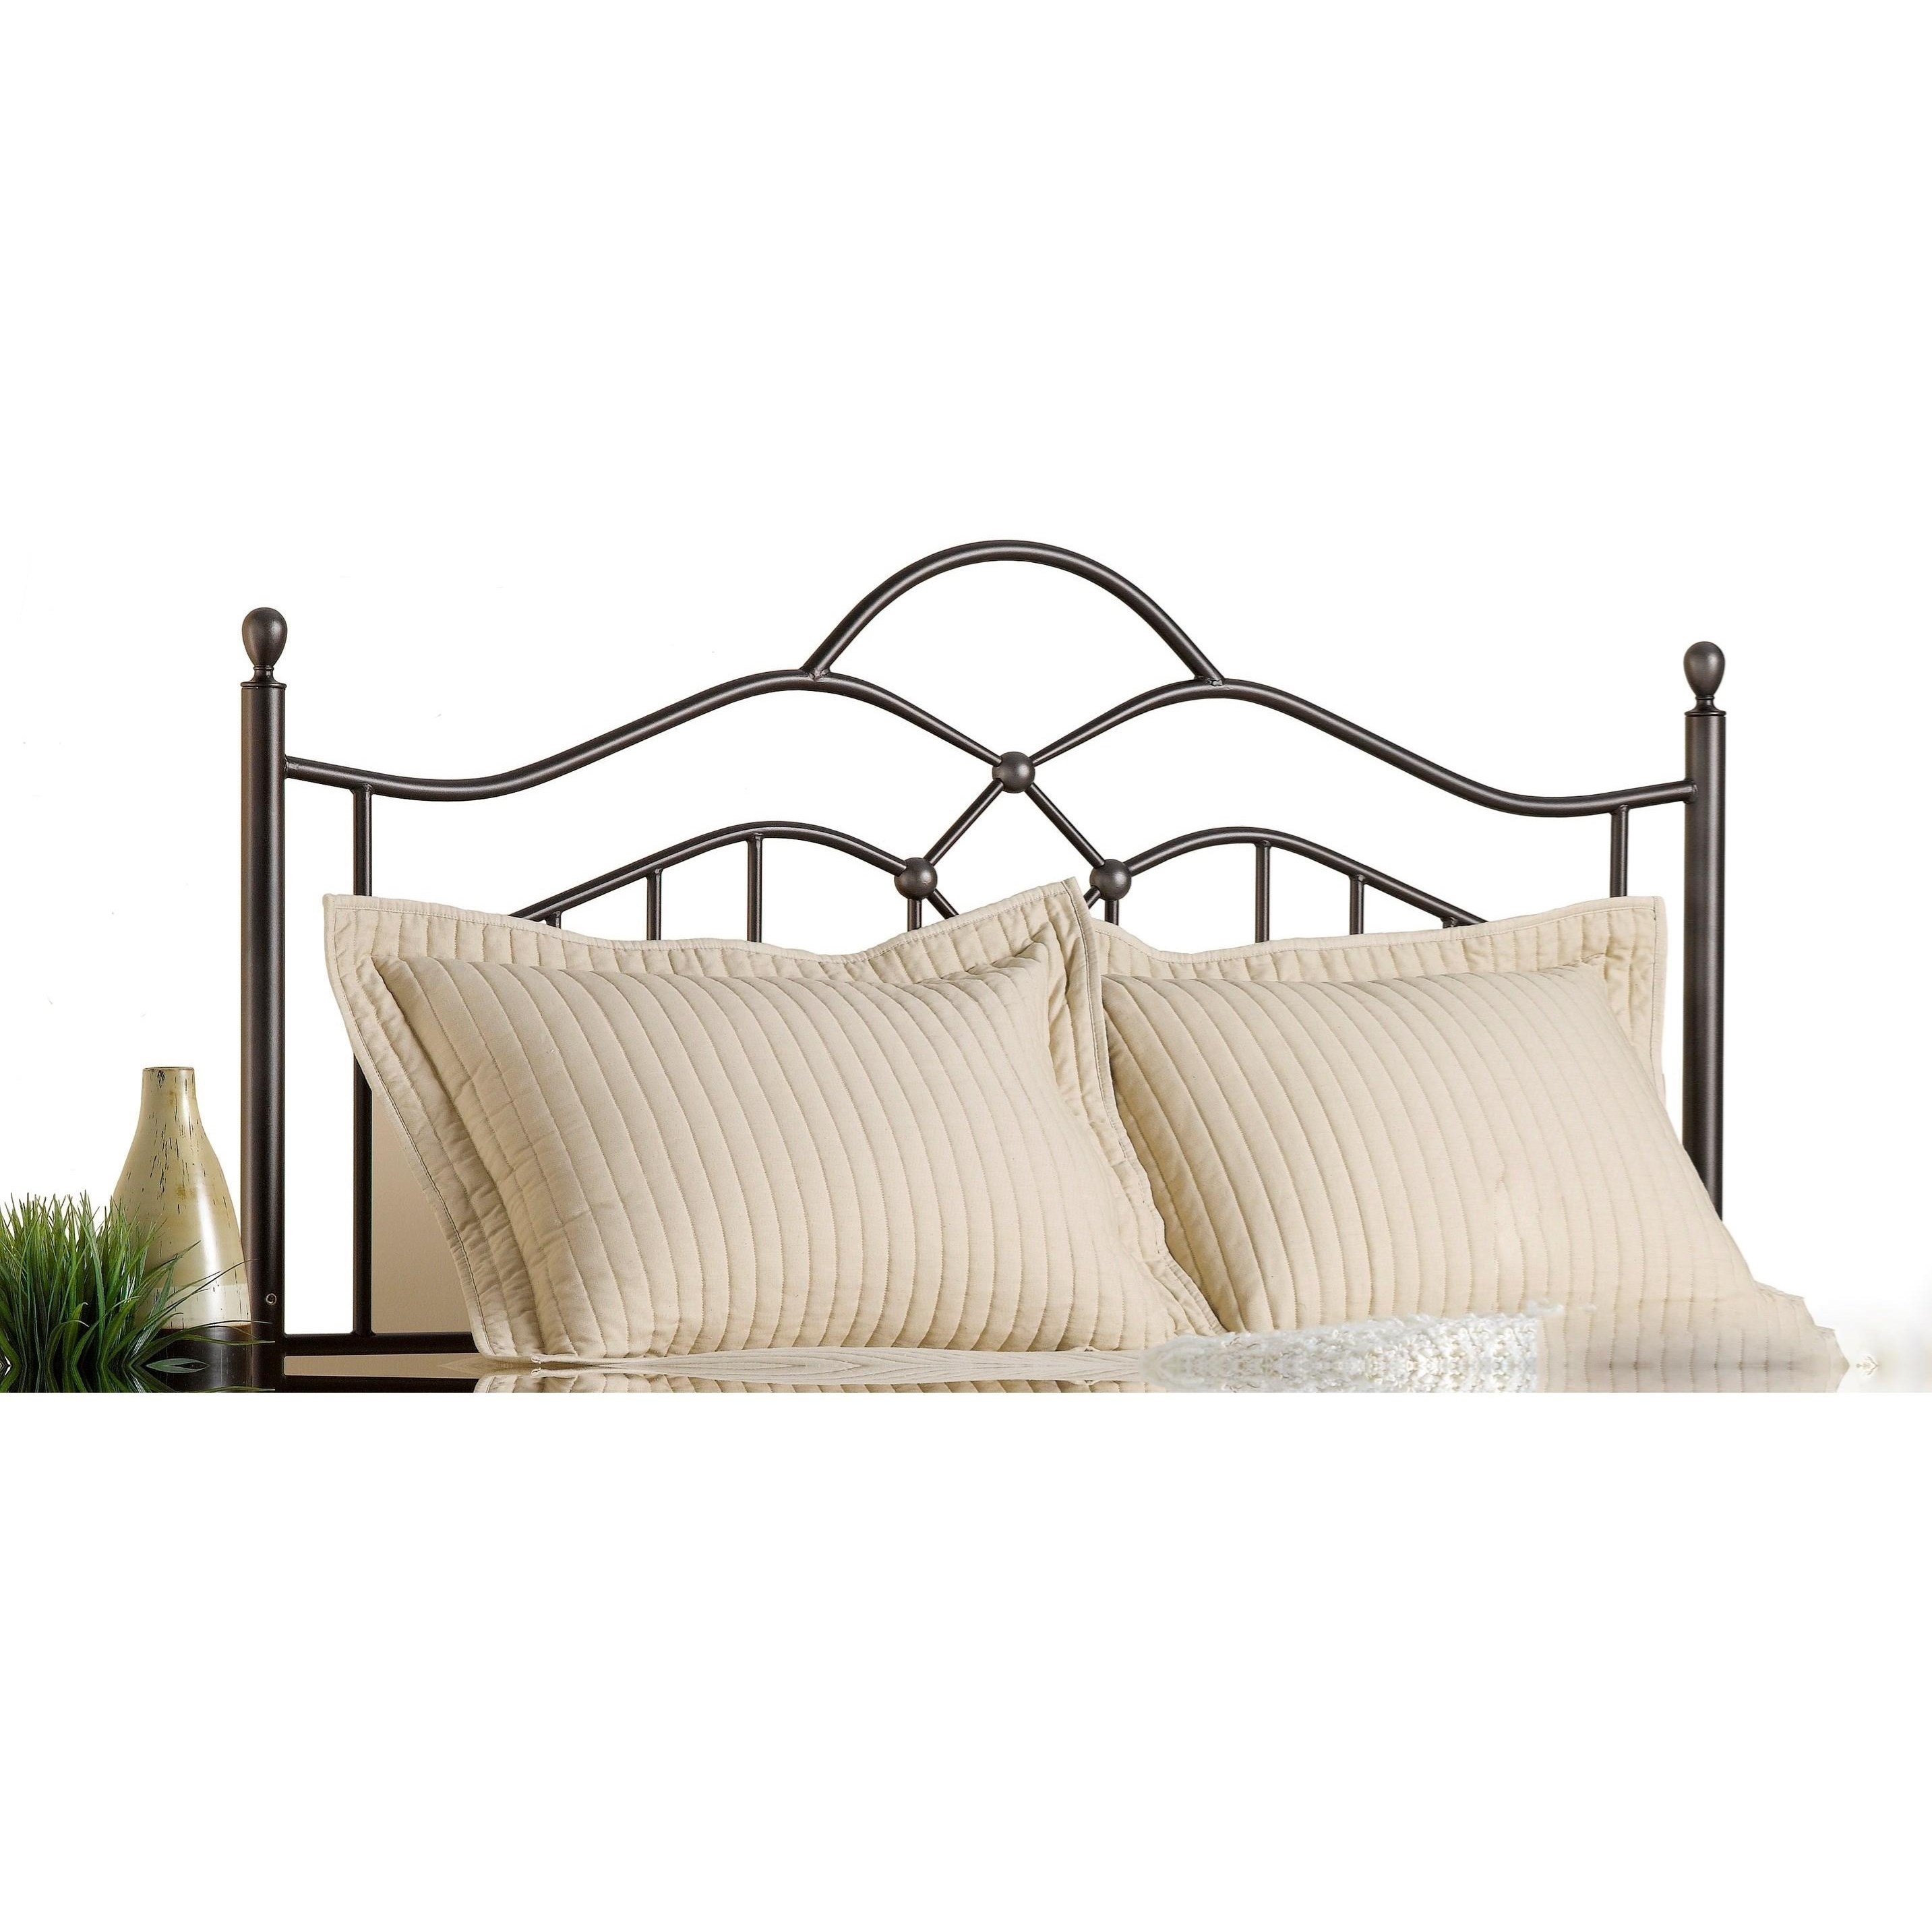 Hillsdale Metal Beds King Oklahoma Headboard - Item Number: 1300HKR